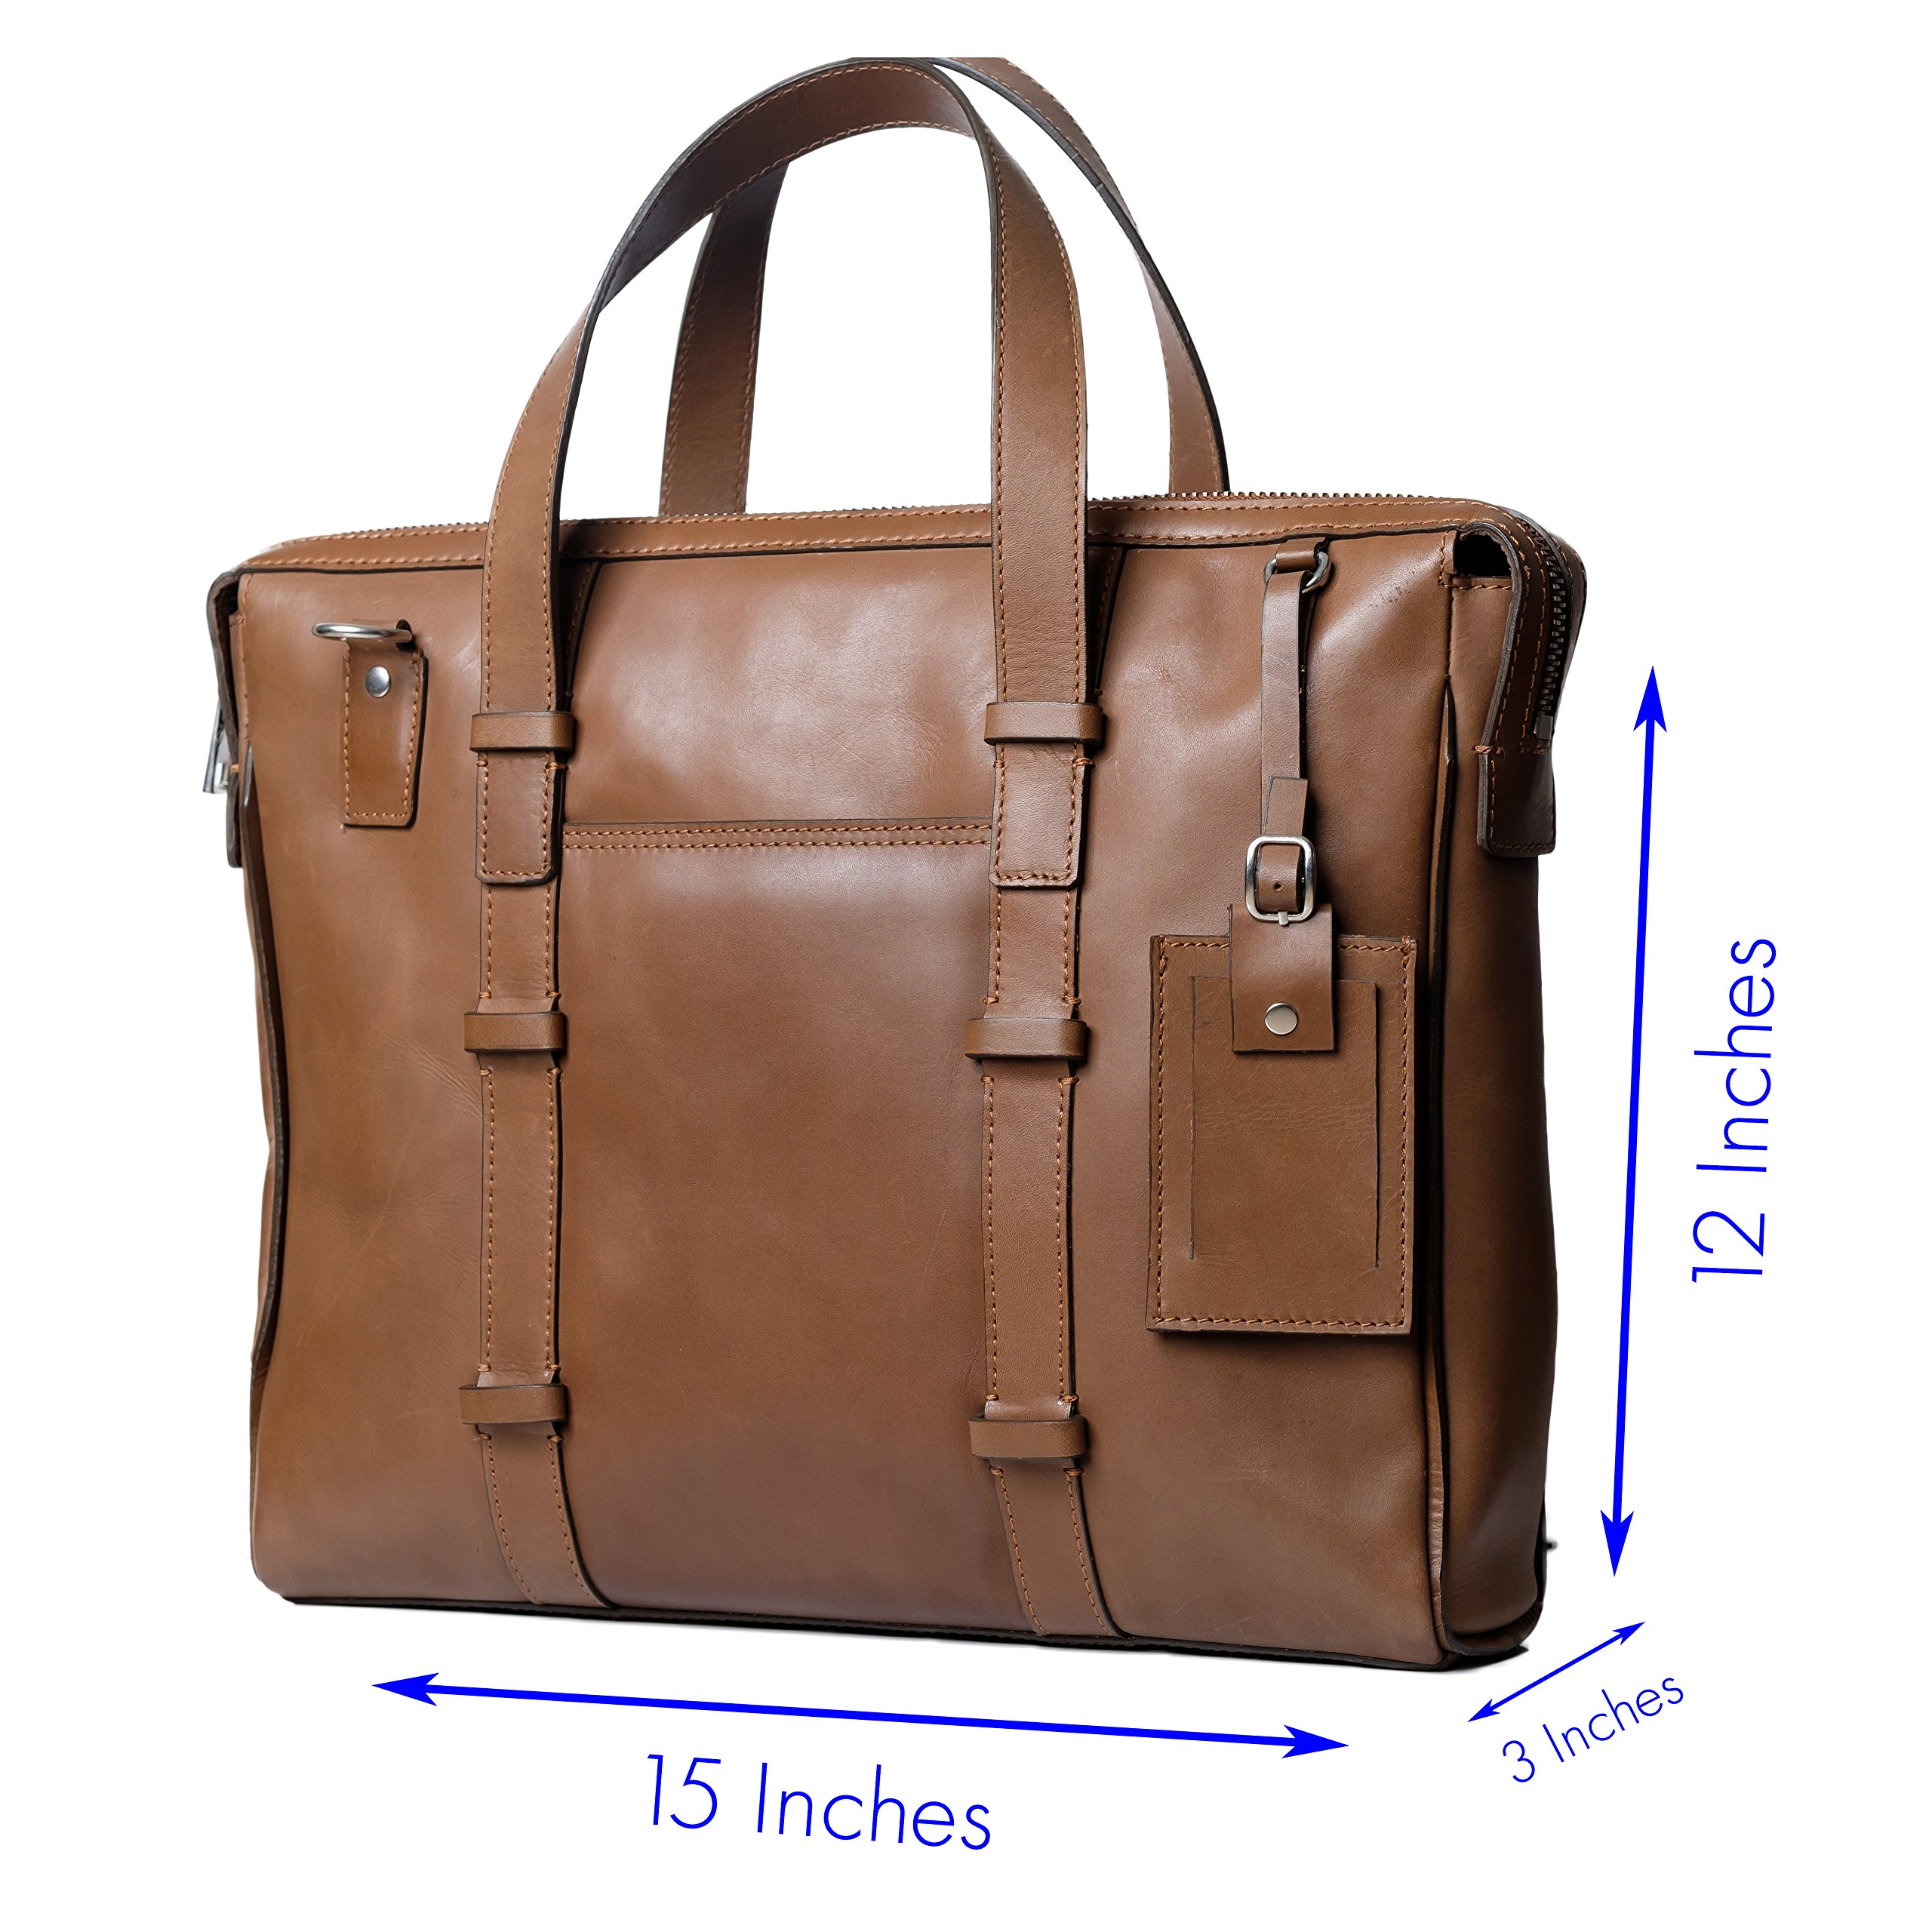 Genuine Leather Laptop Messenger Bag/Handbag for Men & Women, BAILEY, Compact Executive Bag fits 15.4 inch Laptop, 15 inch by 12 inch by 3 inch (Brown) by Ladderback by Ladderback (Image #3)